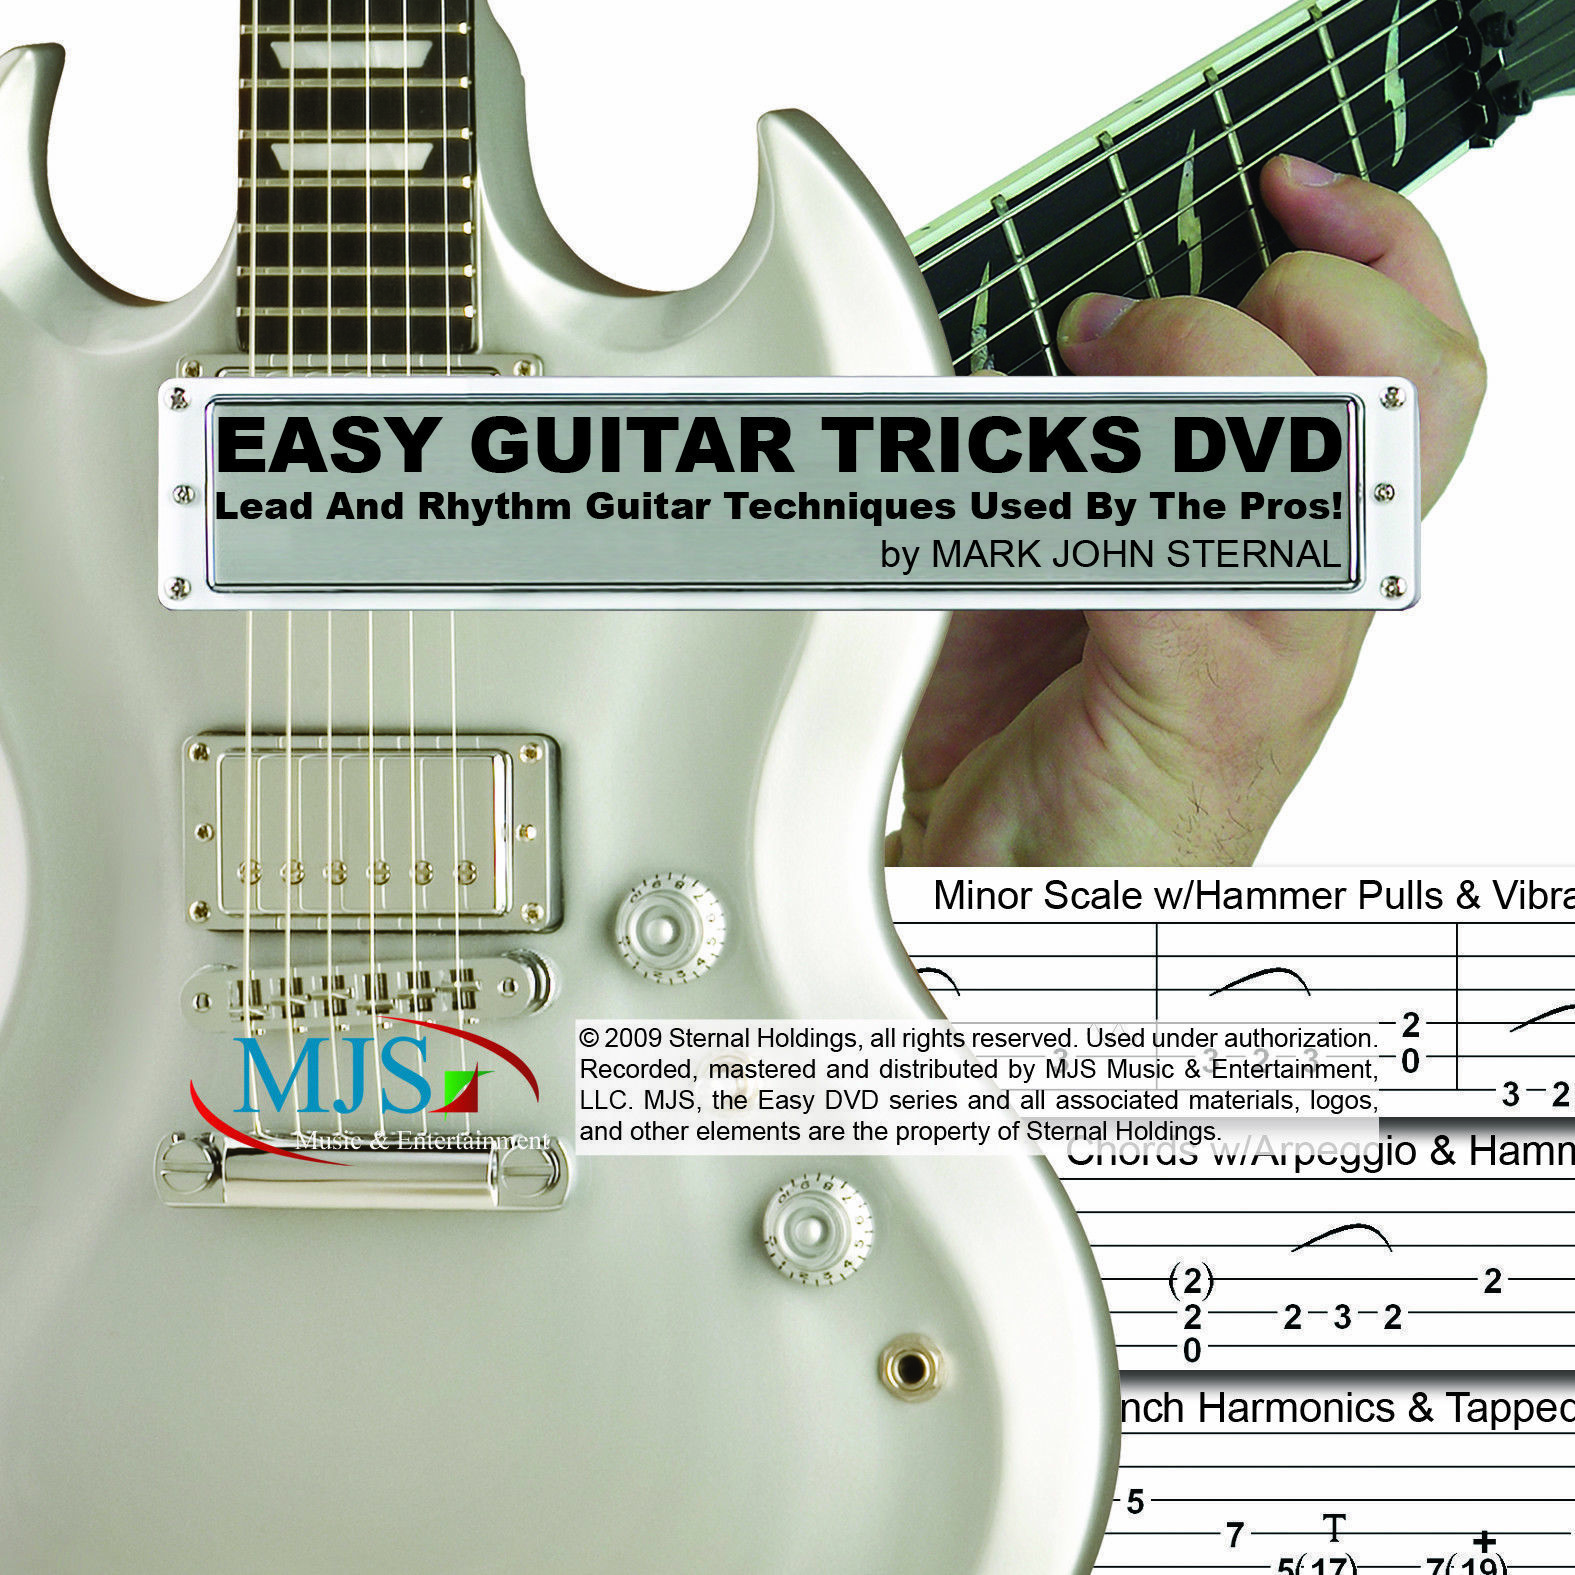 EASY GUITAR TRICKS Lead And Rhythm Techniques Used By The Pros